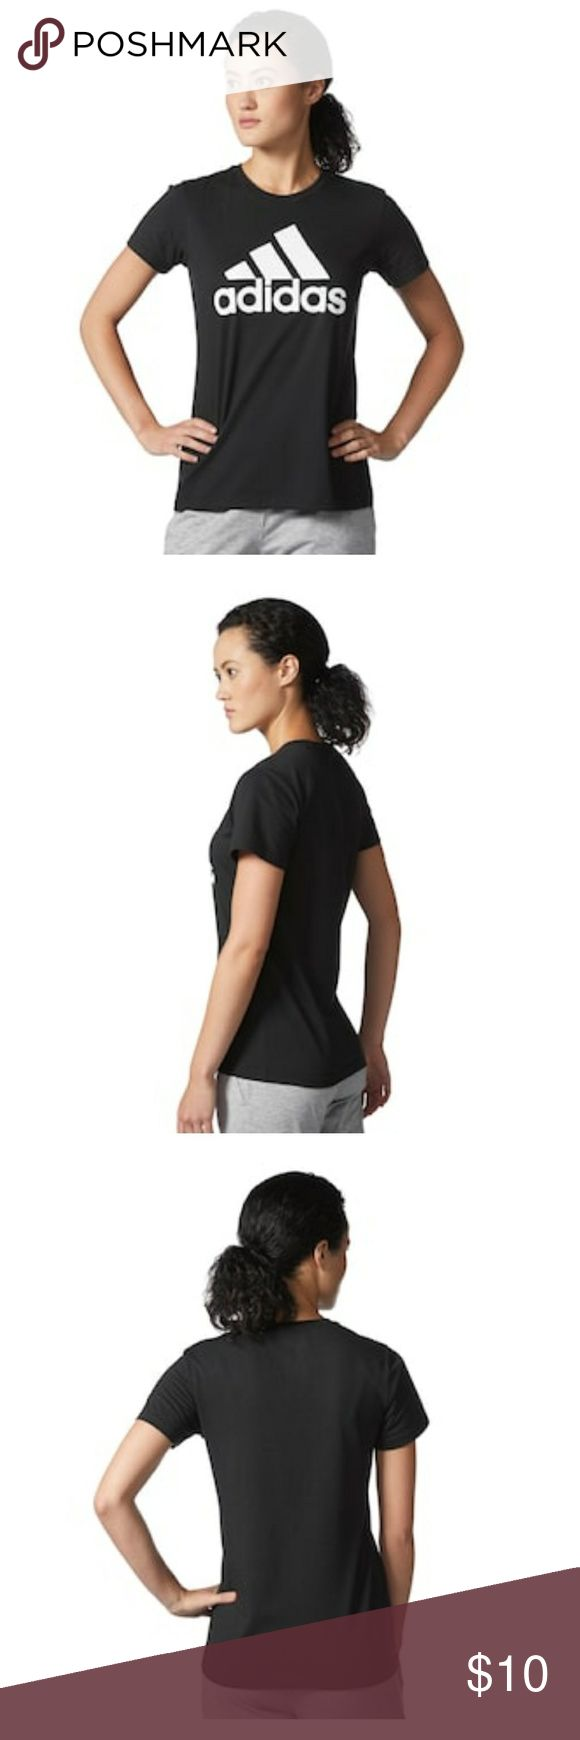 Adidas go to tee Like new no signs of wear. A company classic style. adidas Tops Tees - Short Sleeve